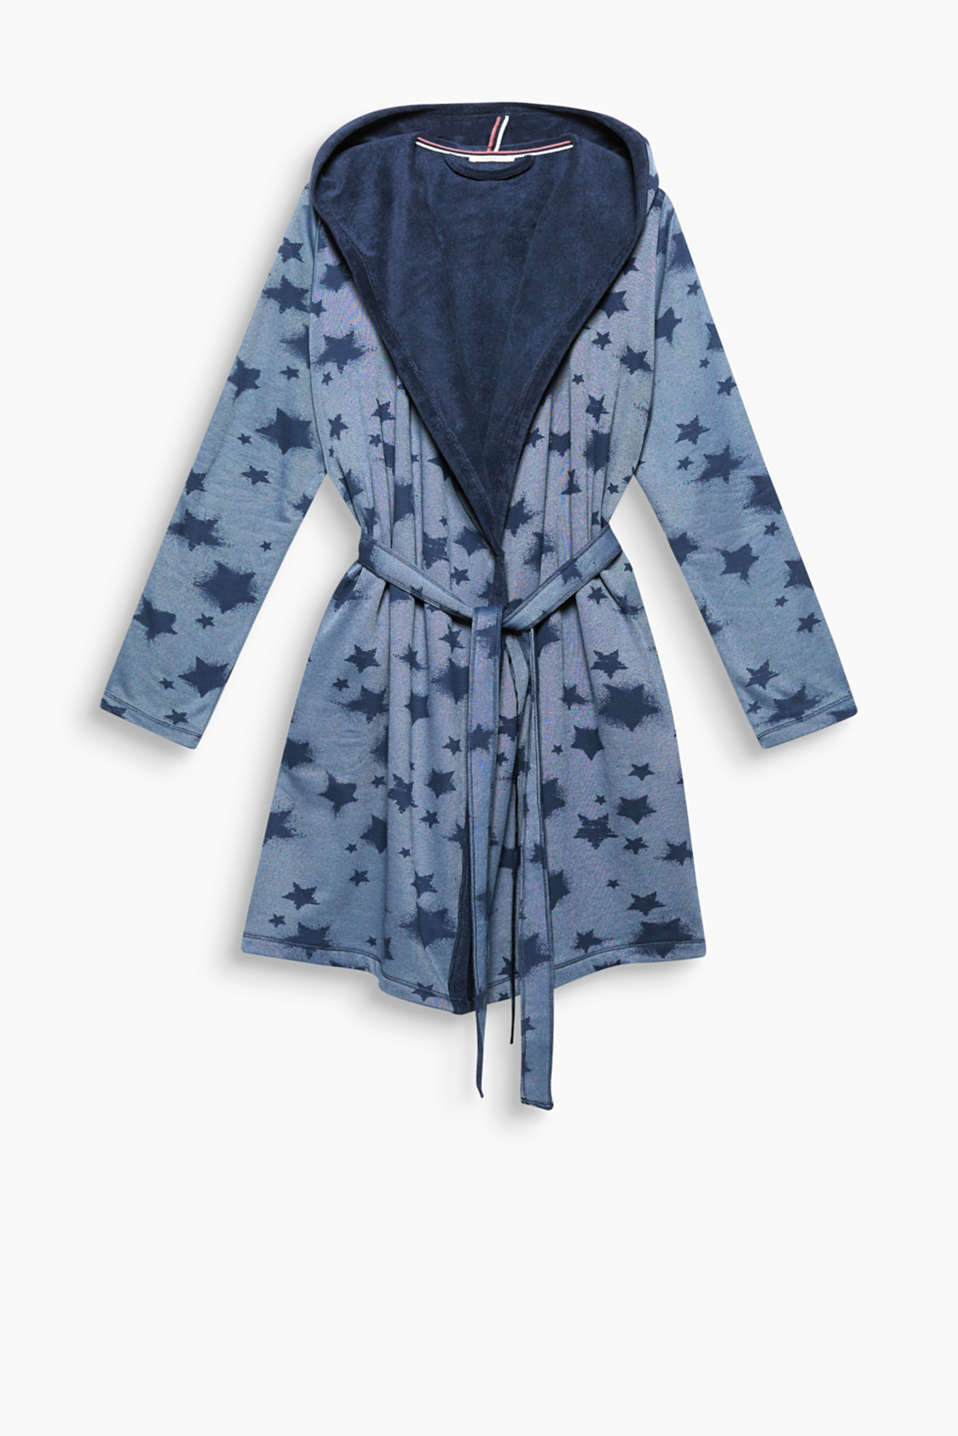 This sweatshirt kimono with a star print and towelling lining promises heavenly comfort!